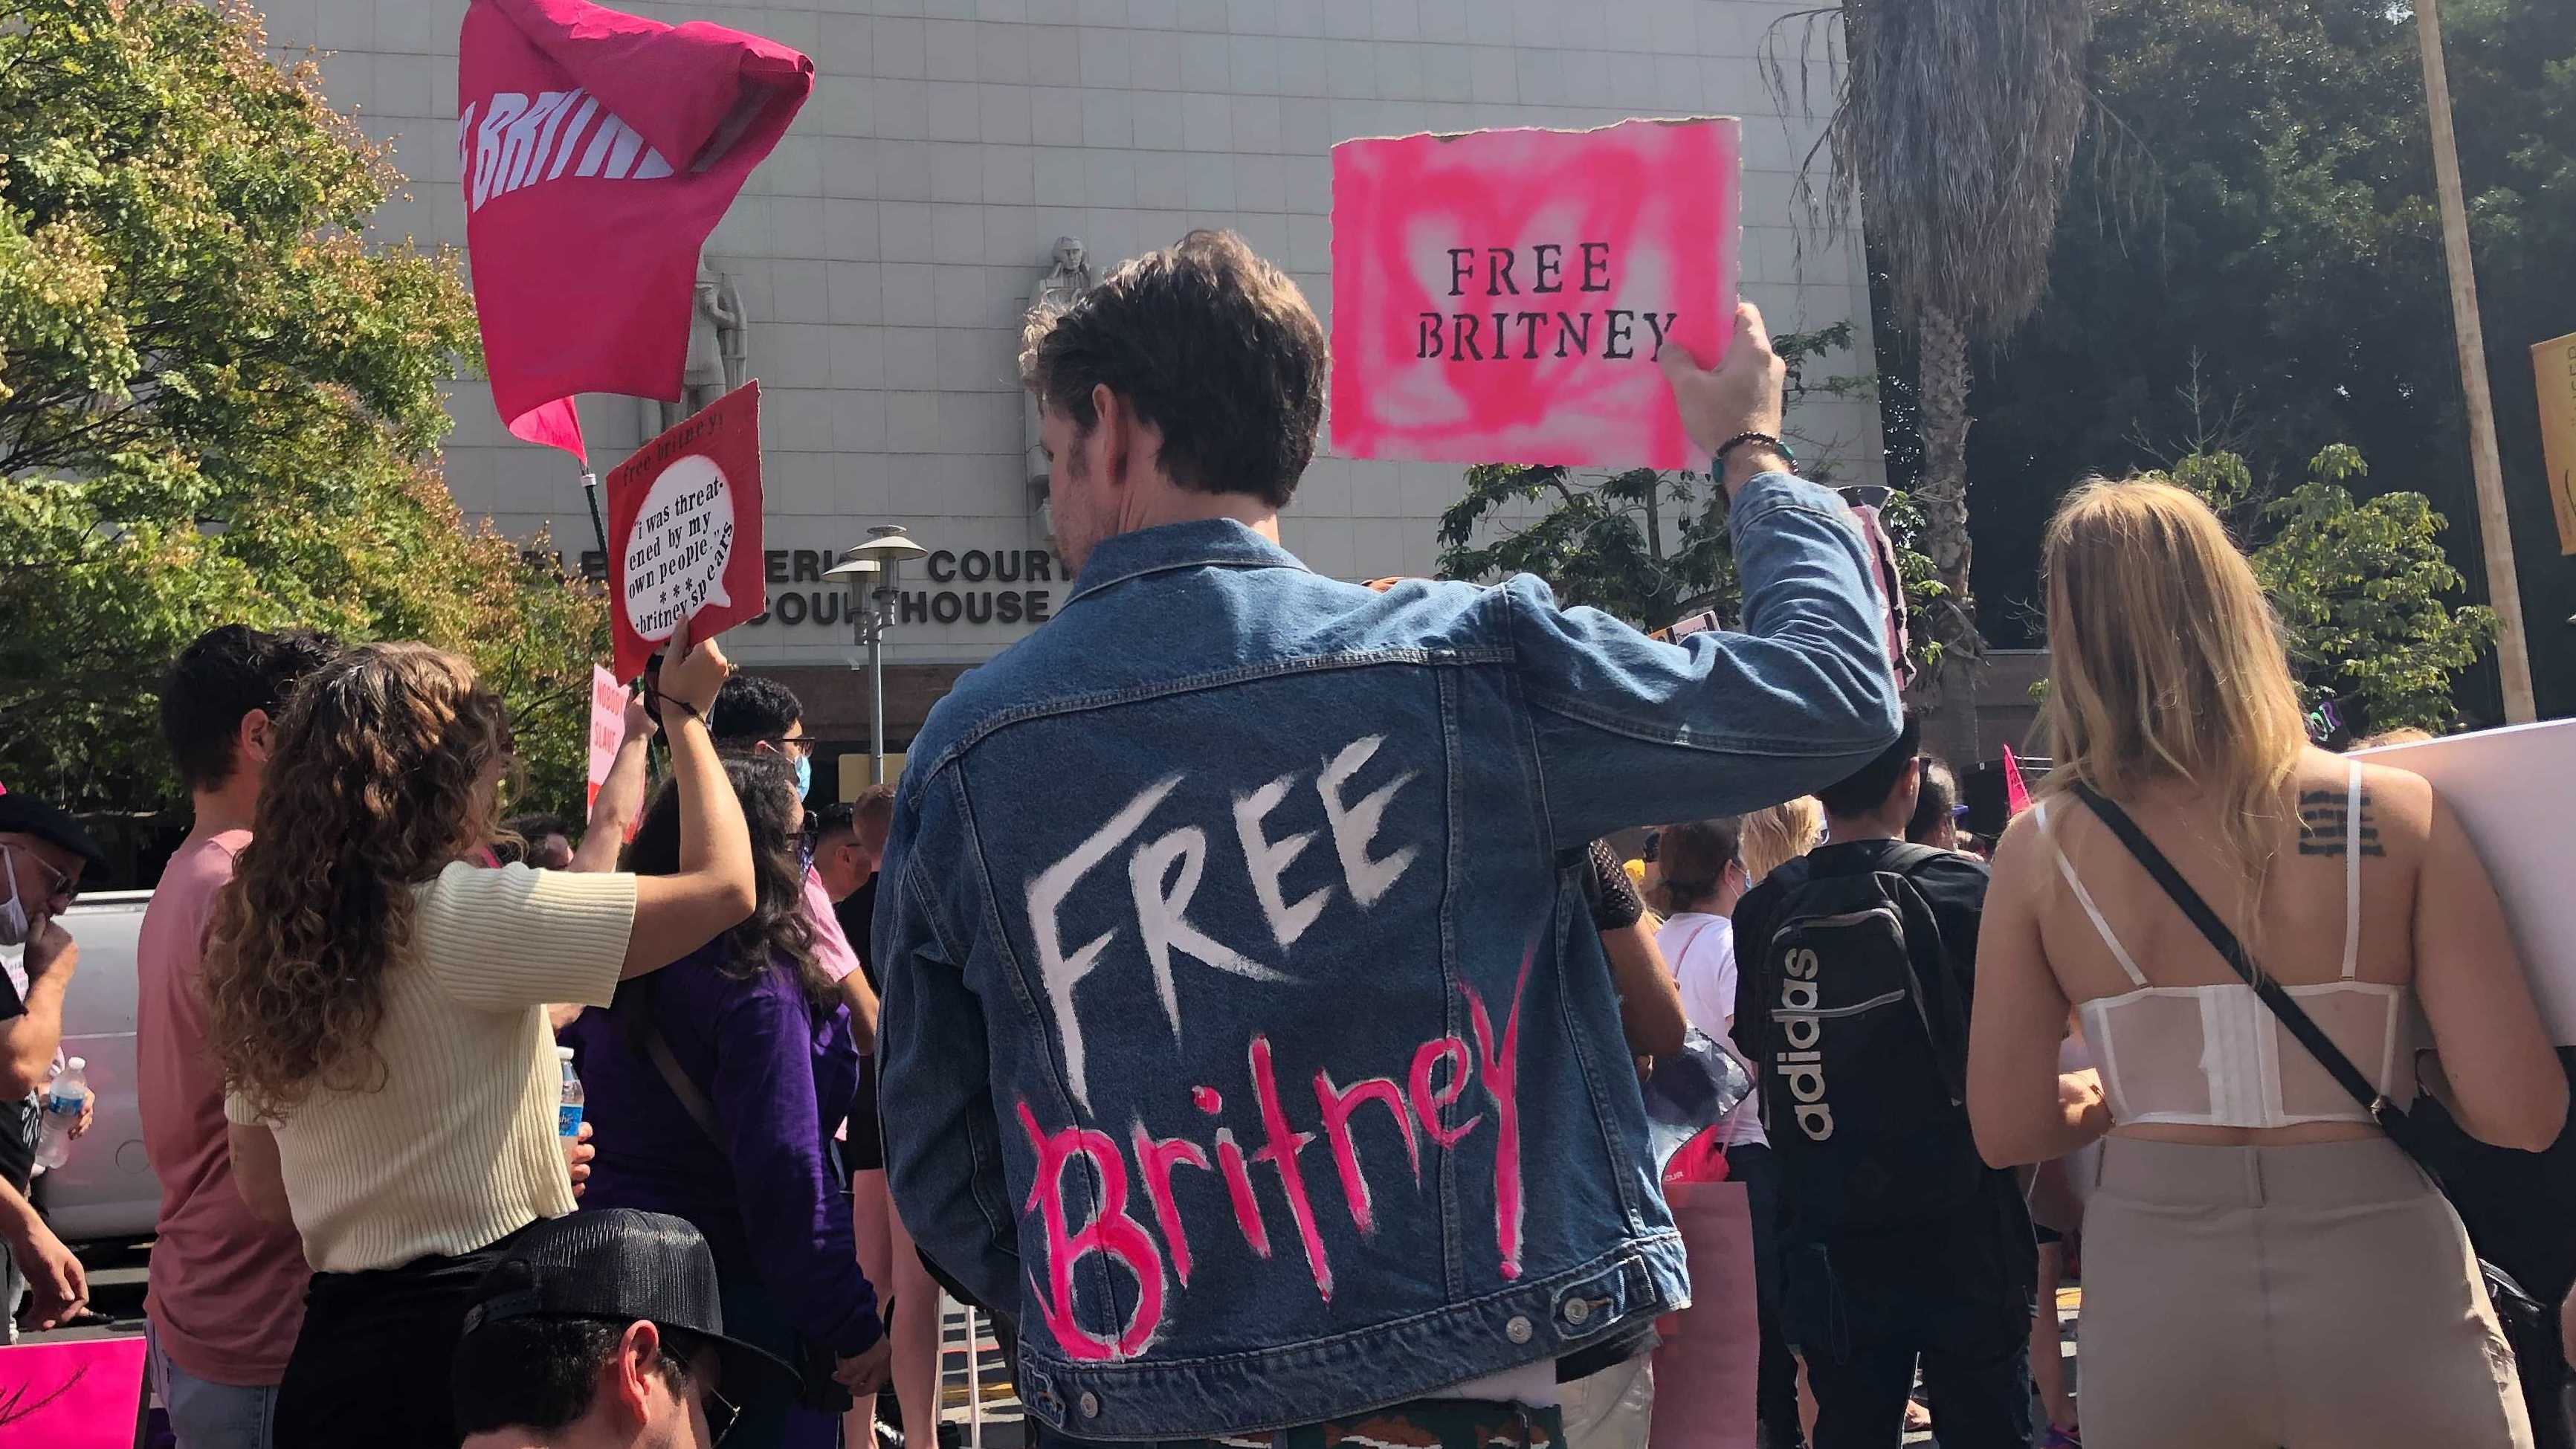 Britney Spears supporter Peter Stickles was among those demonstrating outside Los Angeles Superior Court on Wednesday.